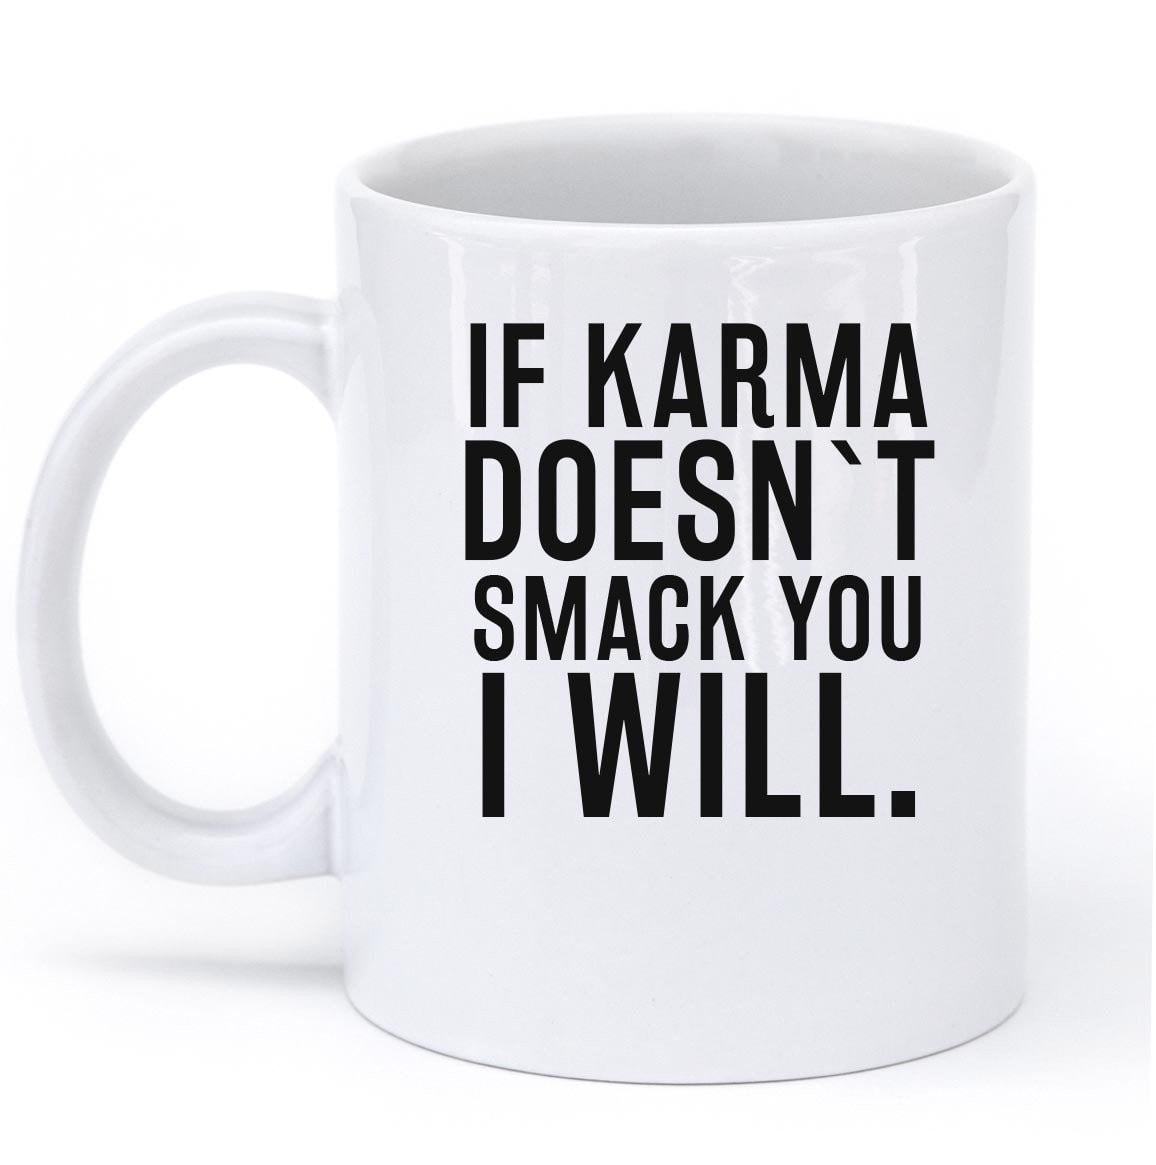 IF KARMA DOESNT SMACK YOU I WILL MUG - Shirtoopia